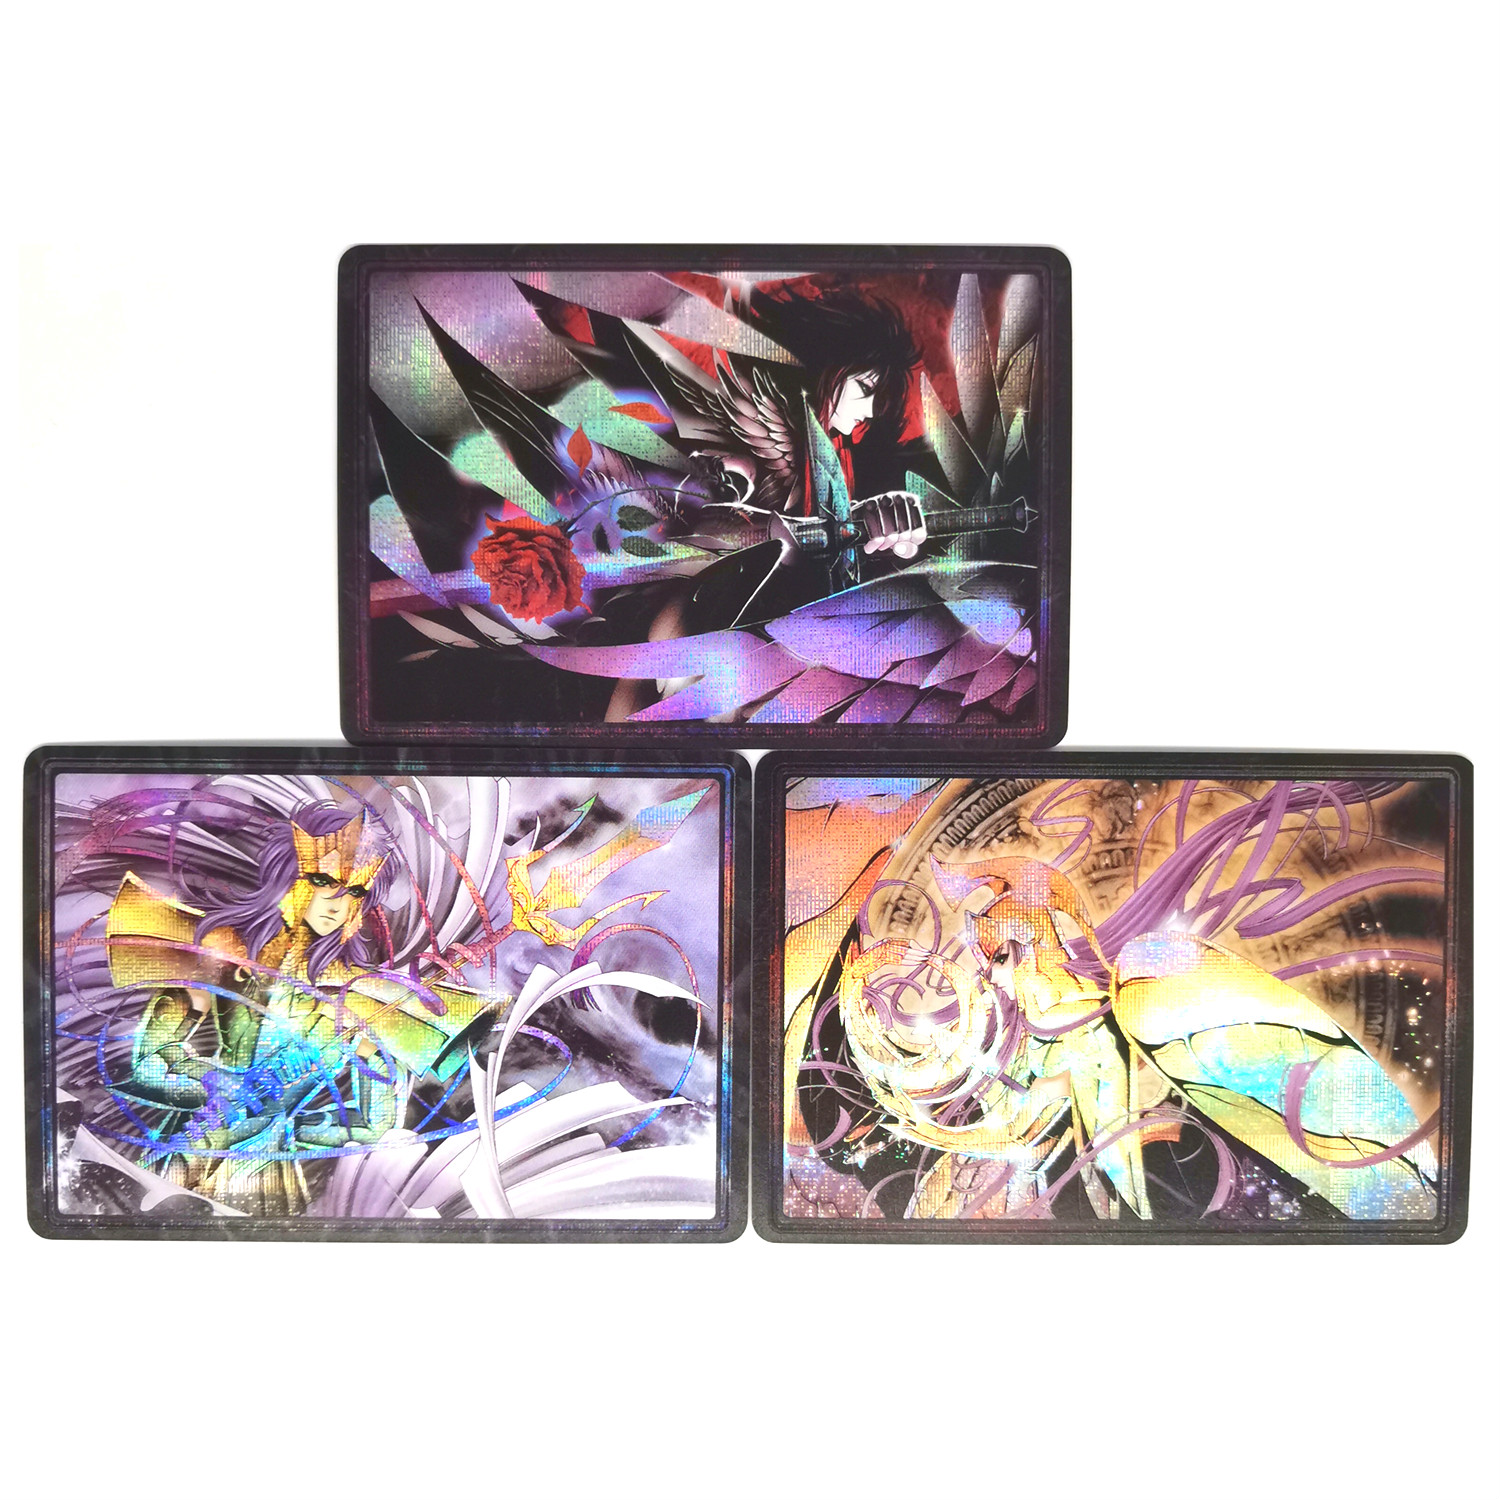 3pcs/set Saint Seiya Athena Poseidon Hades Toys Hobbies Hobby Collectibles Game Collection Anime Cards